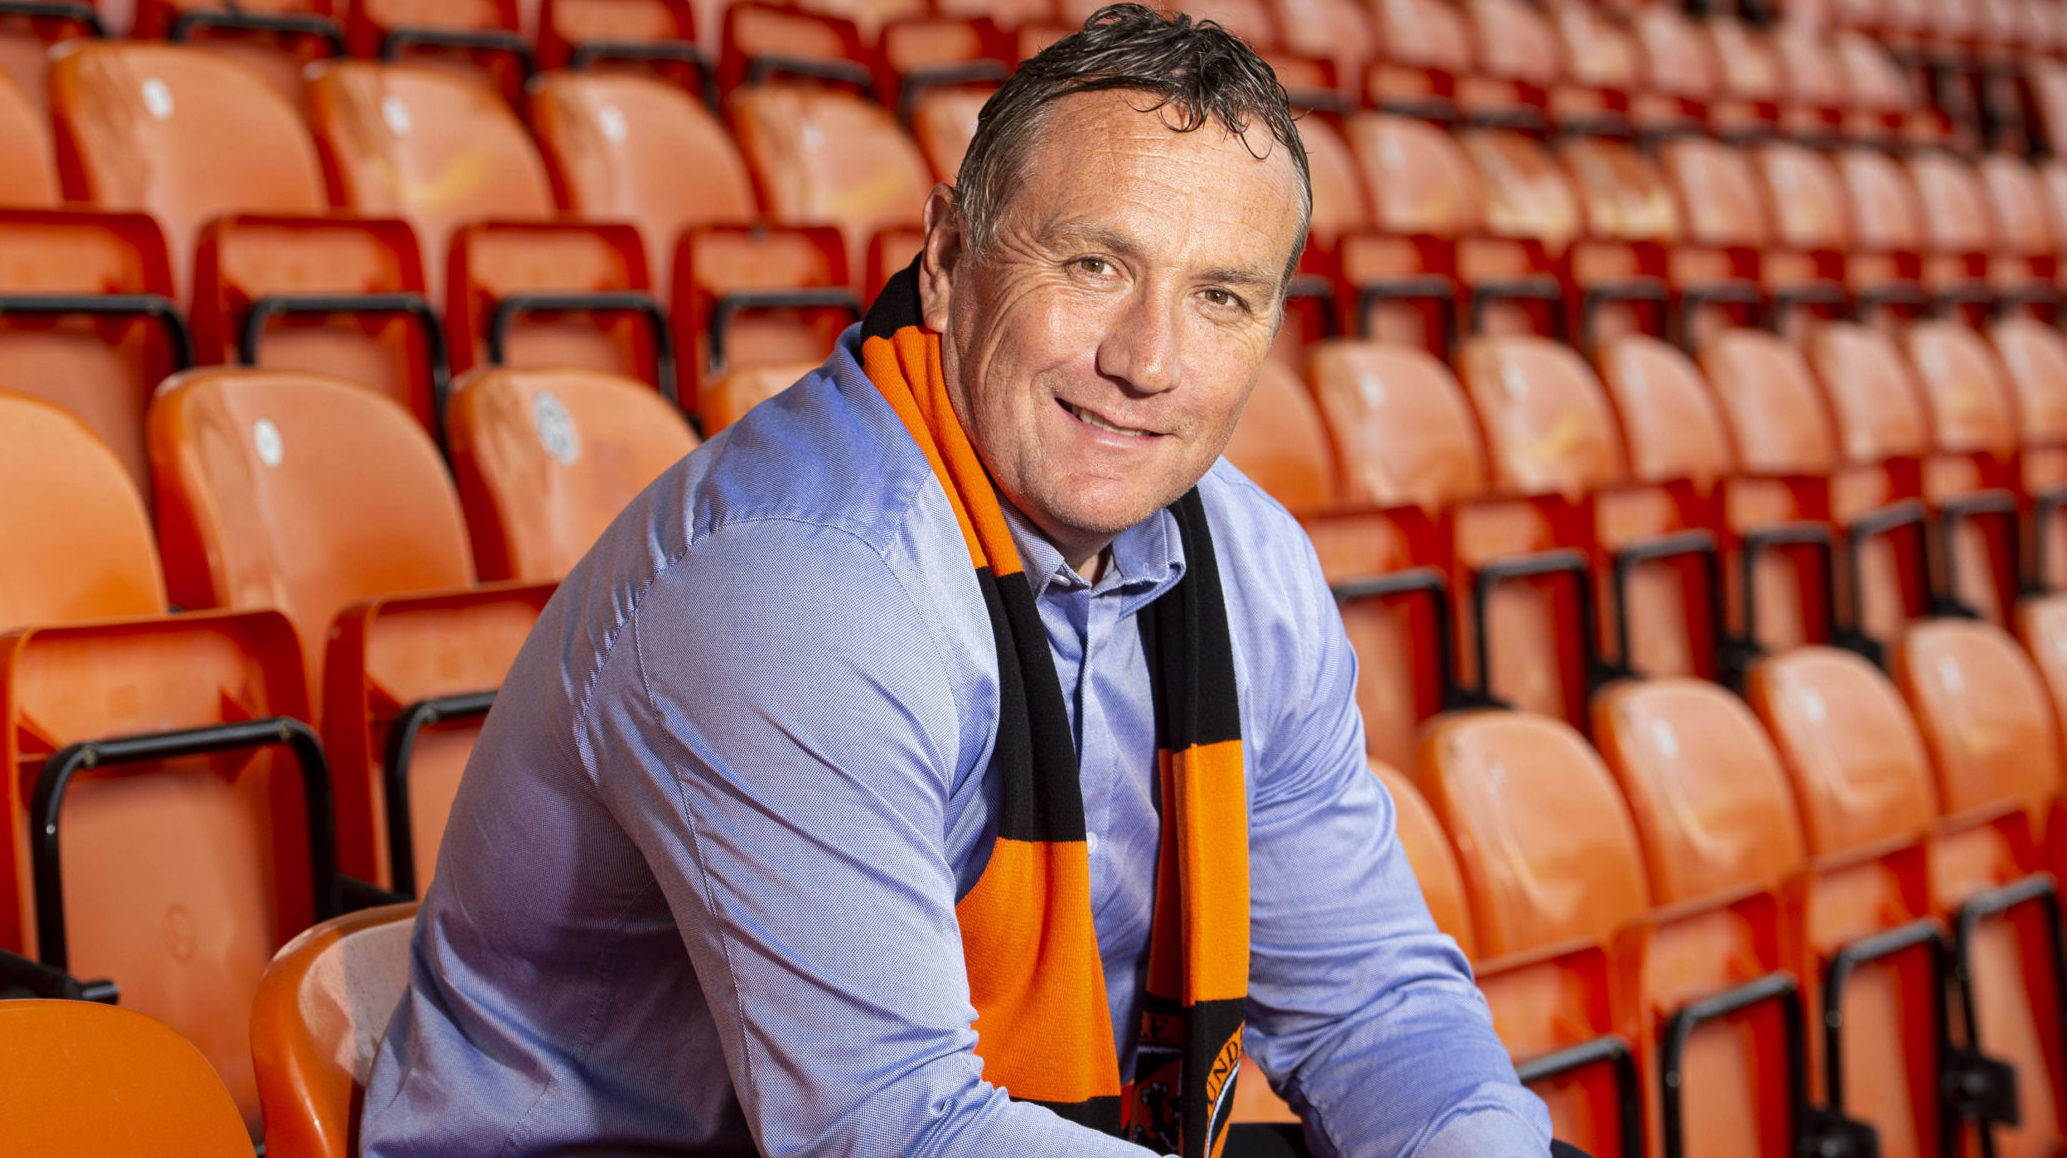 Micky Mellon wants to connect with United fans.